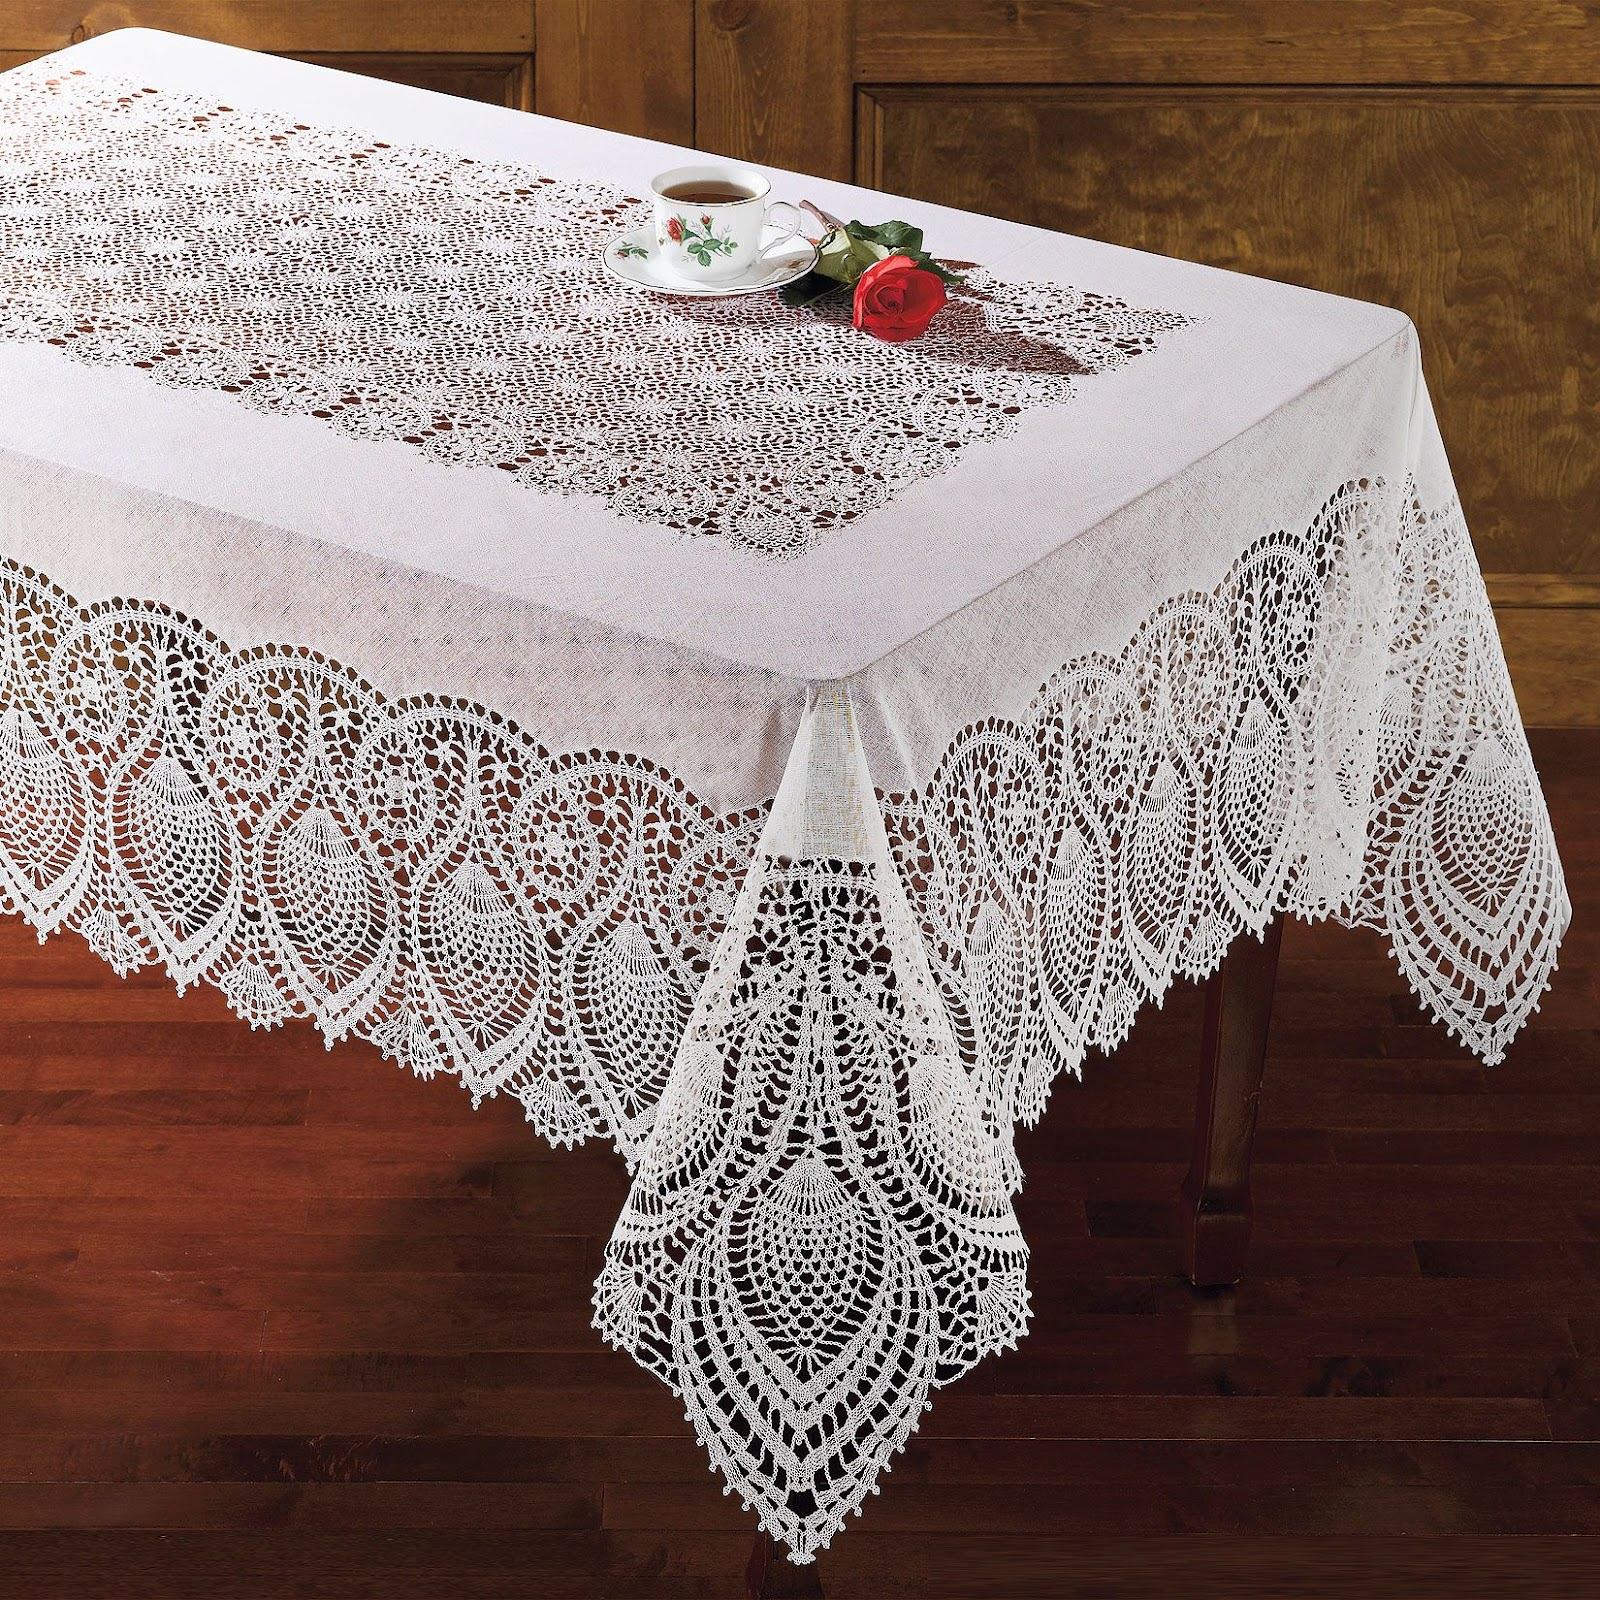 Lace Tablecloths | Lace Tablecloth | Round Lace Tablecloth